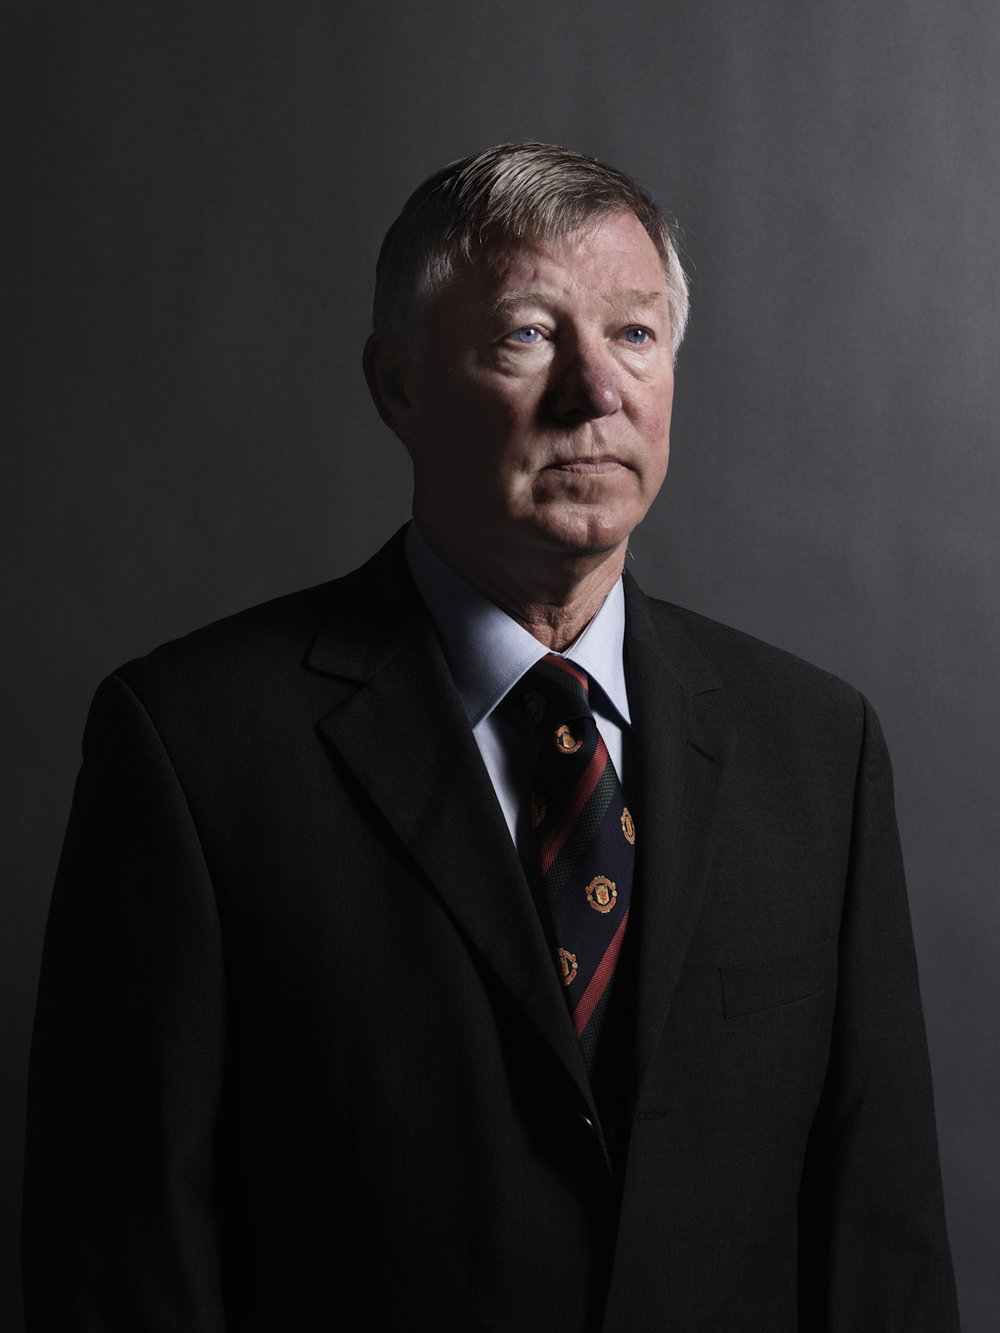 Sir Alex Ferguson.jpg